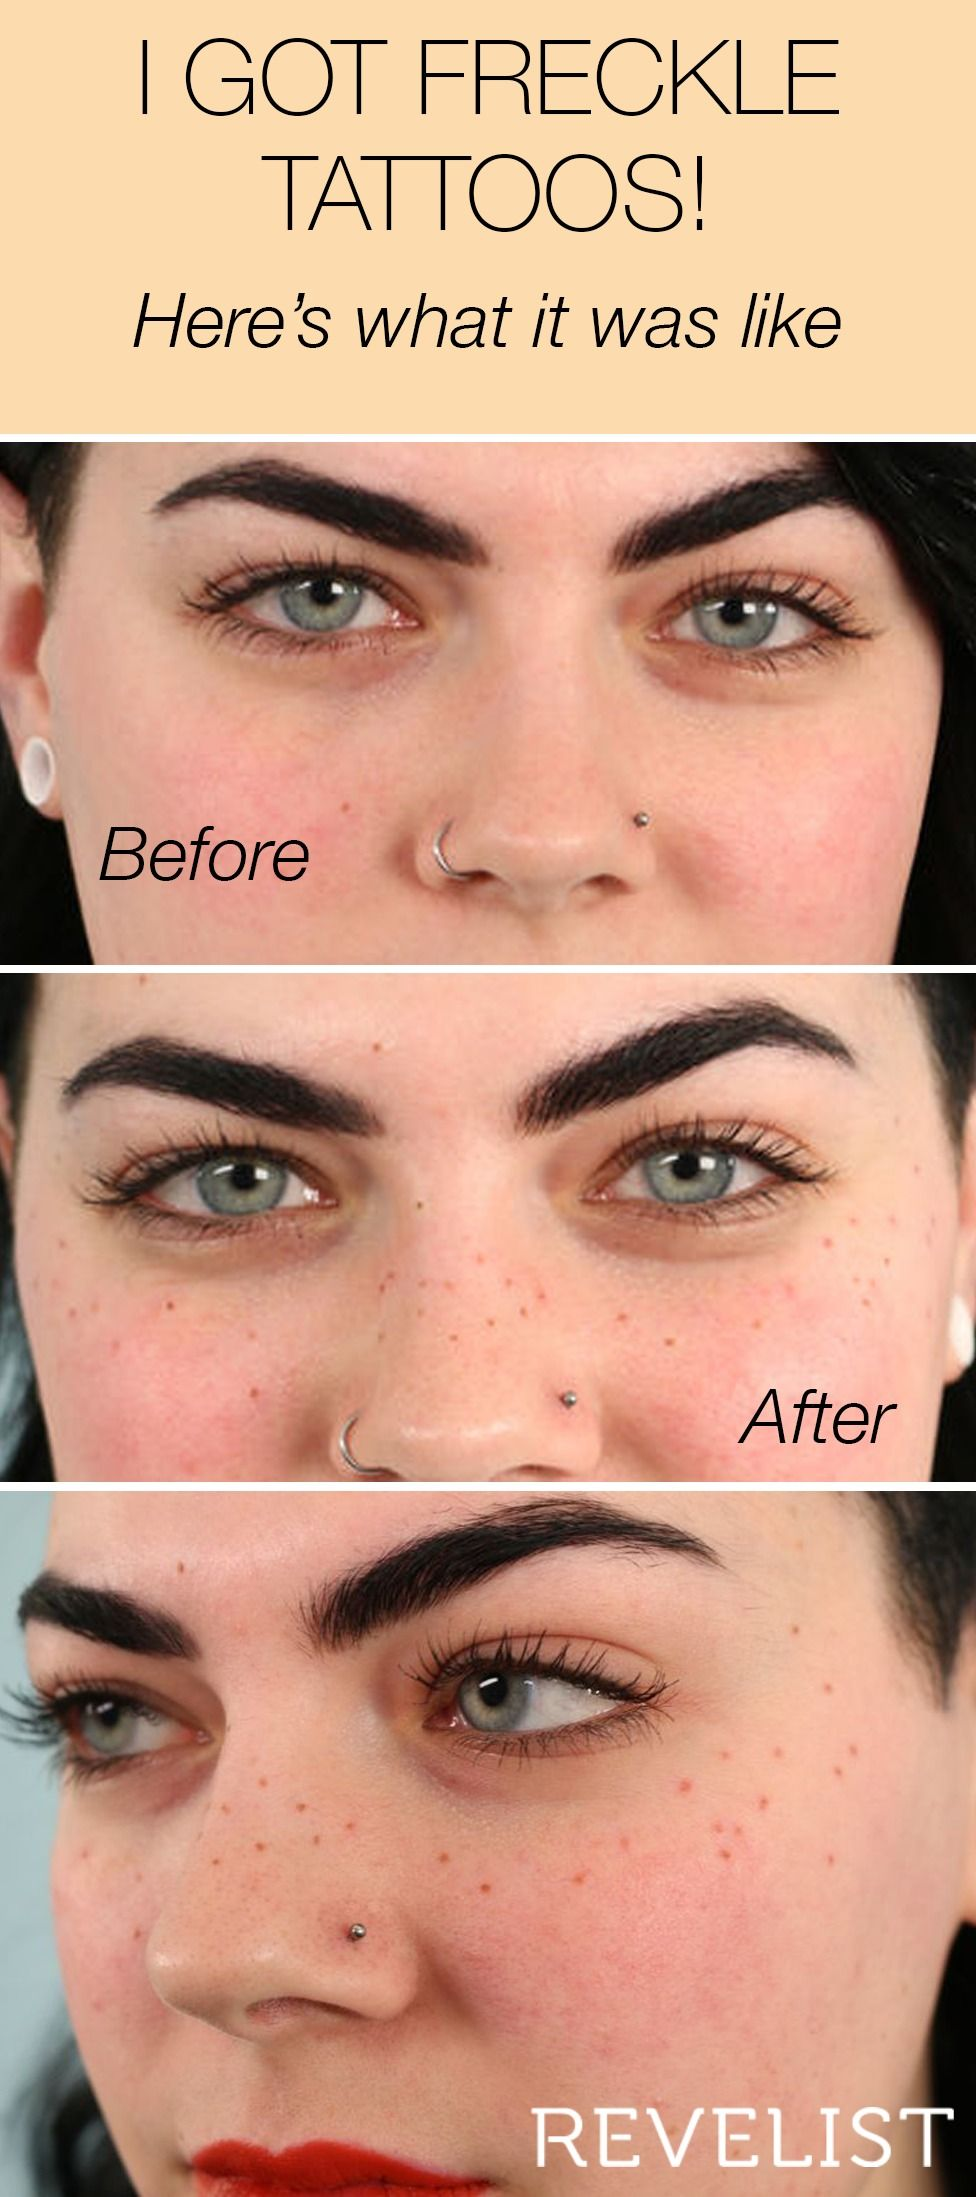 72552b095 If you've been curious about freckle tattoos, this is your chance to learn  everything there is to know. Freckle makeup is a good way to test the  waters, ...